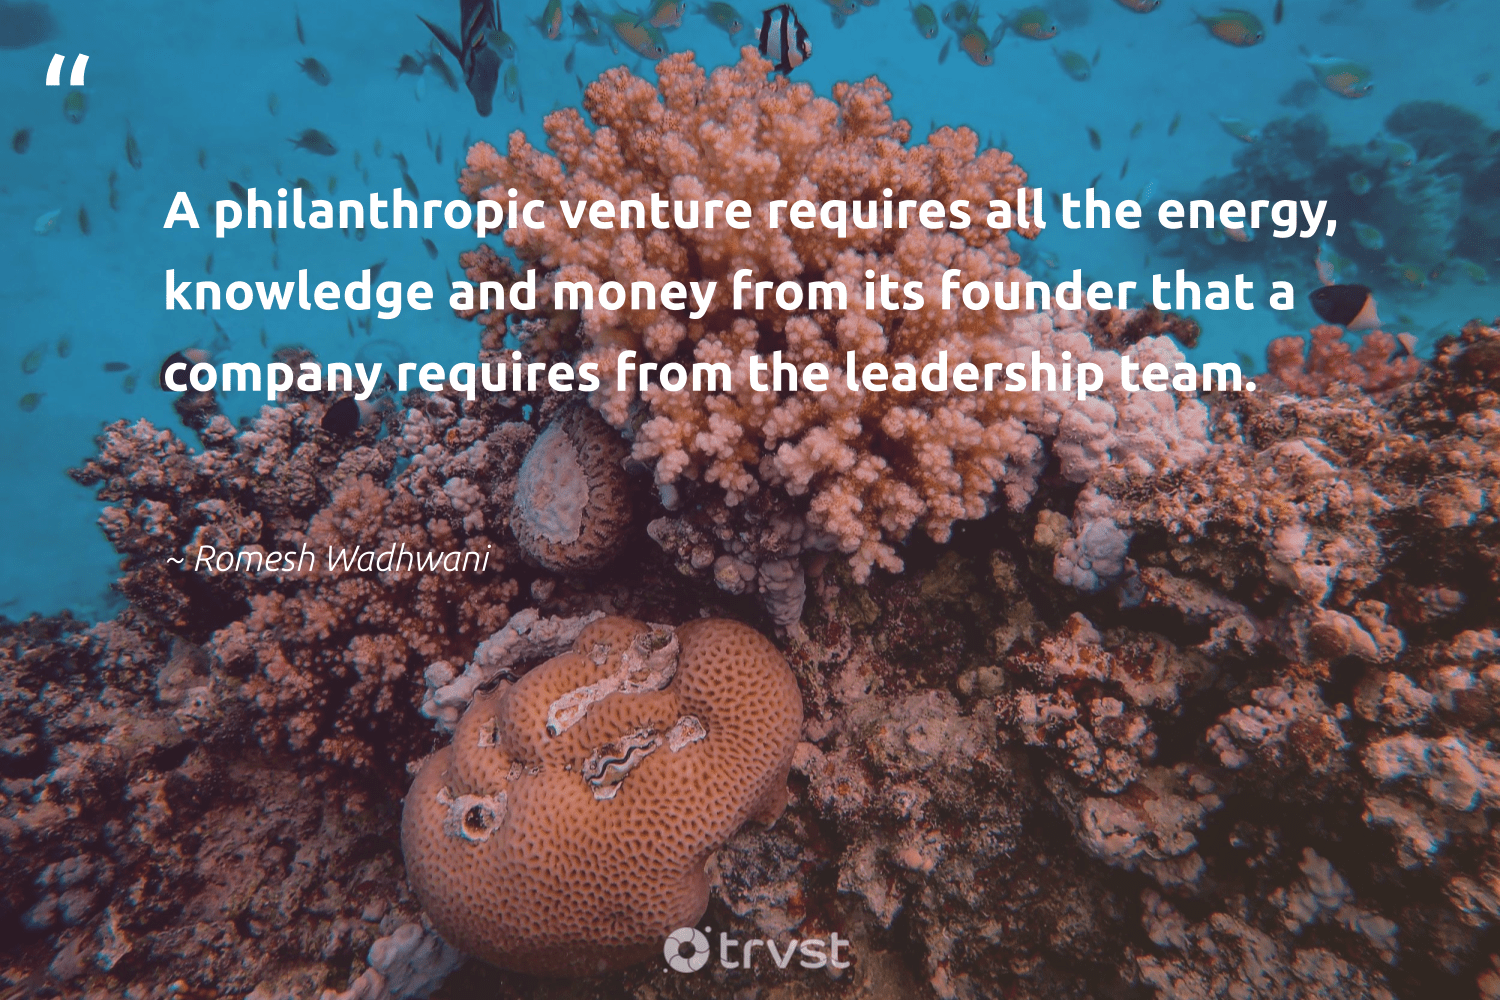 """A philanthropic venture requires all the energy, knowledge and money from its founder that a company requires from the leadership team.""  - Romesh Wadhwani #trvst #quotes #energy #leadership #philanthropic #leadershipskills #togetherwecan #nevergiveup #planetearthfirst #leadershipdevelopment #itscooltobekind #futureofwork"